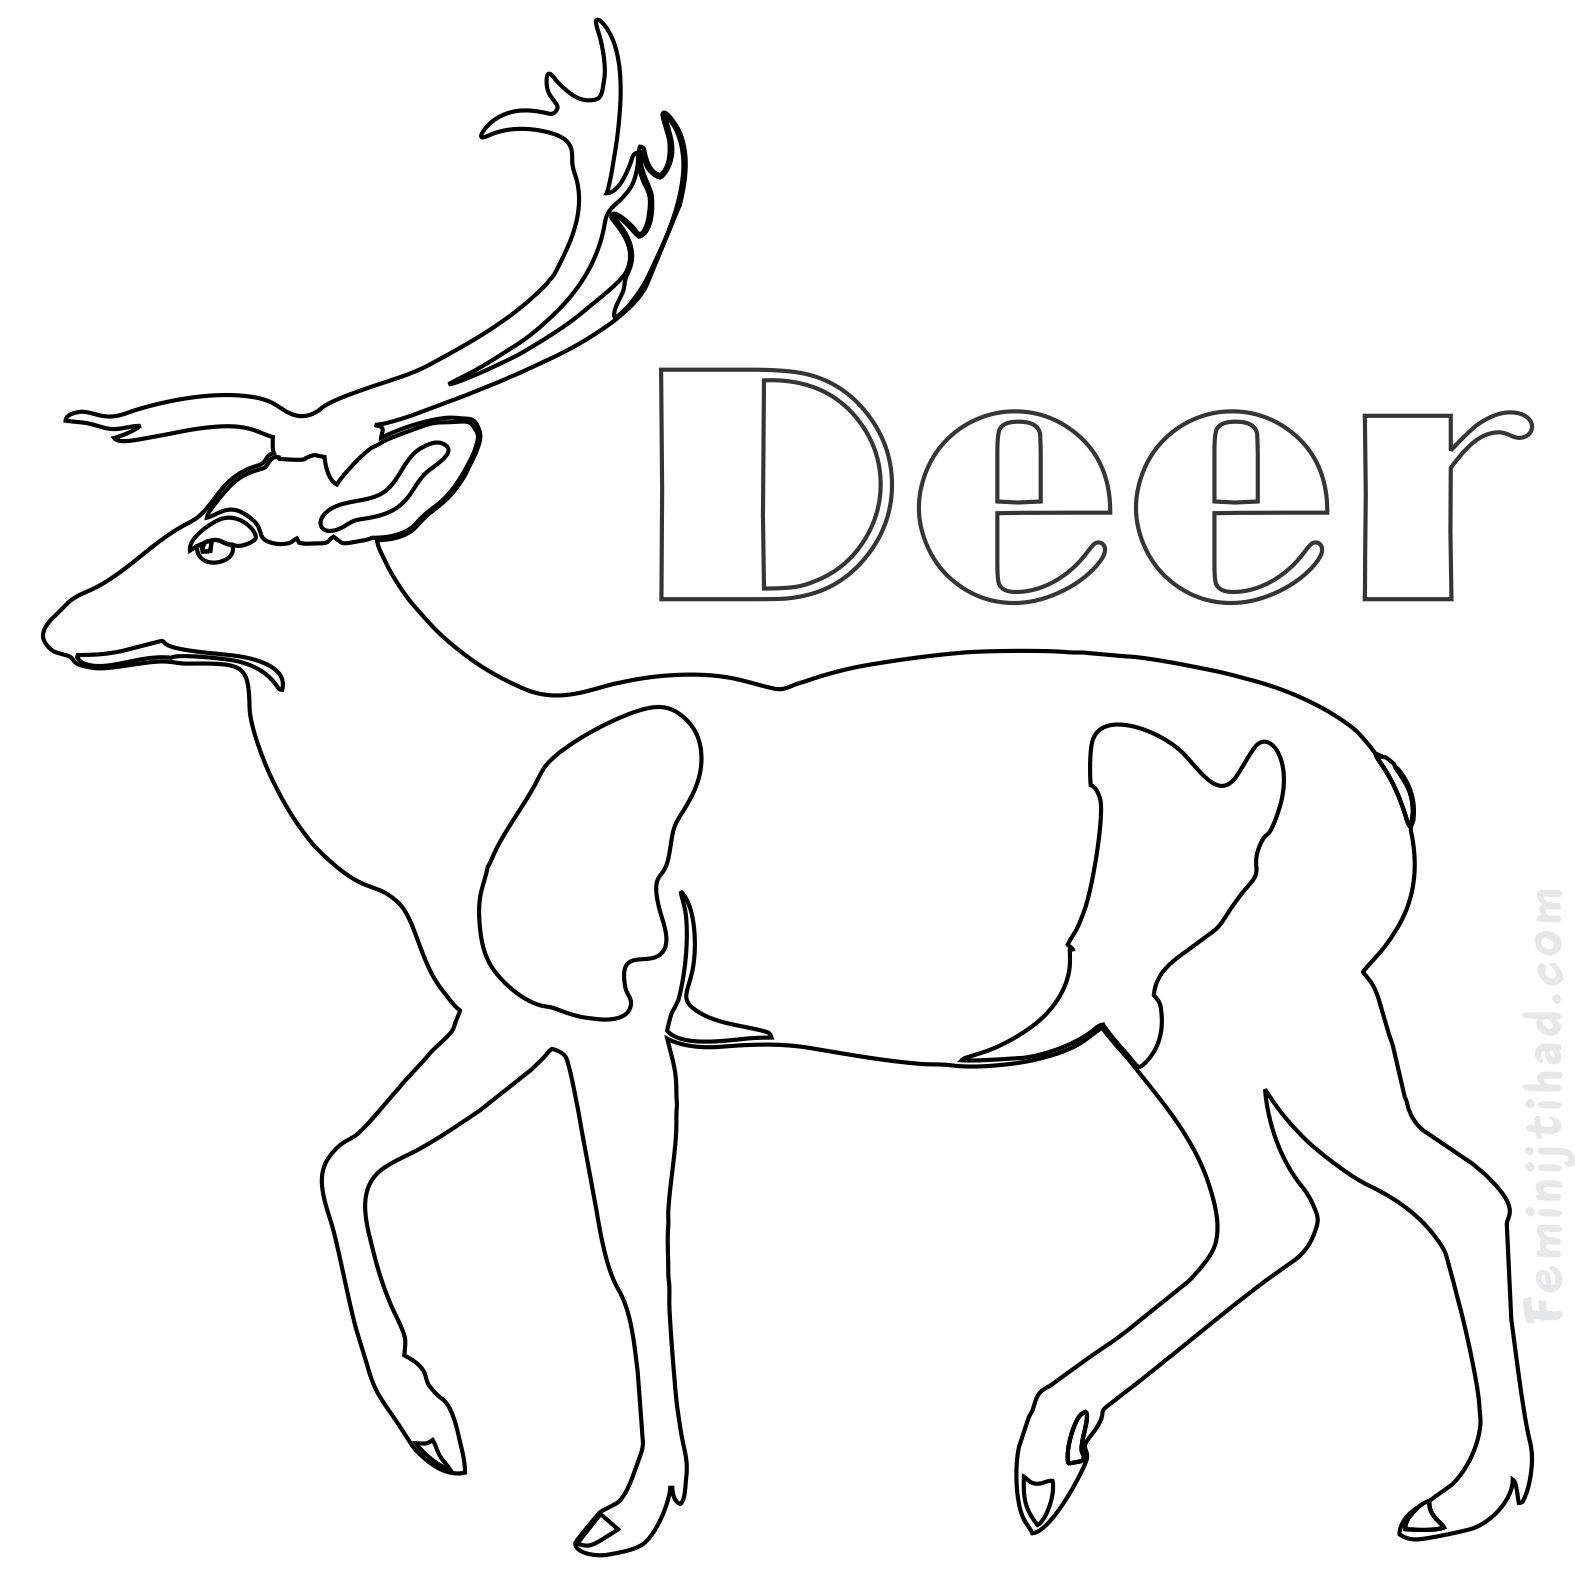 1575x1575 Printable Deer Coloring Pages Free Download Coloring Pages For Kids